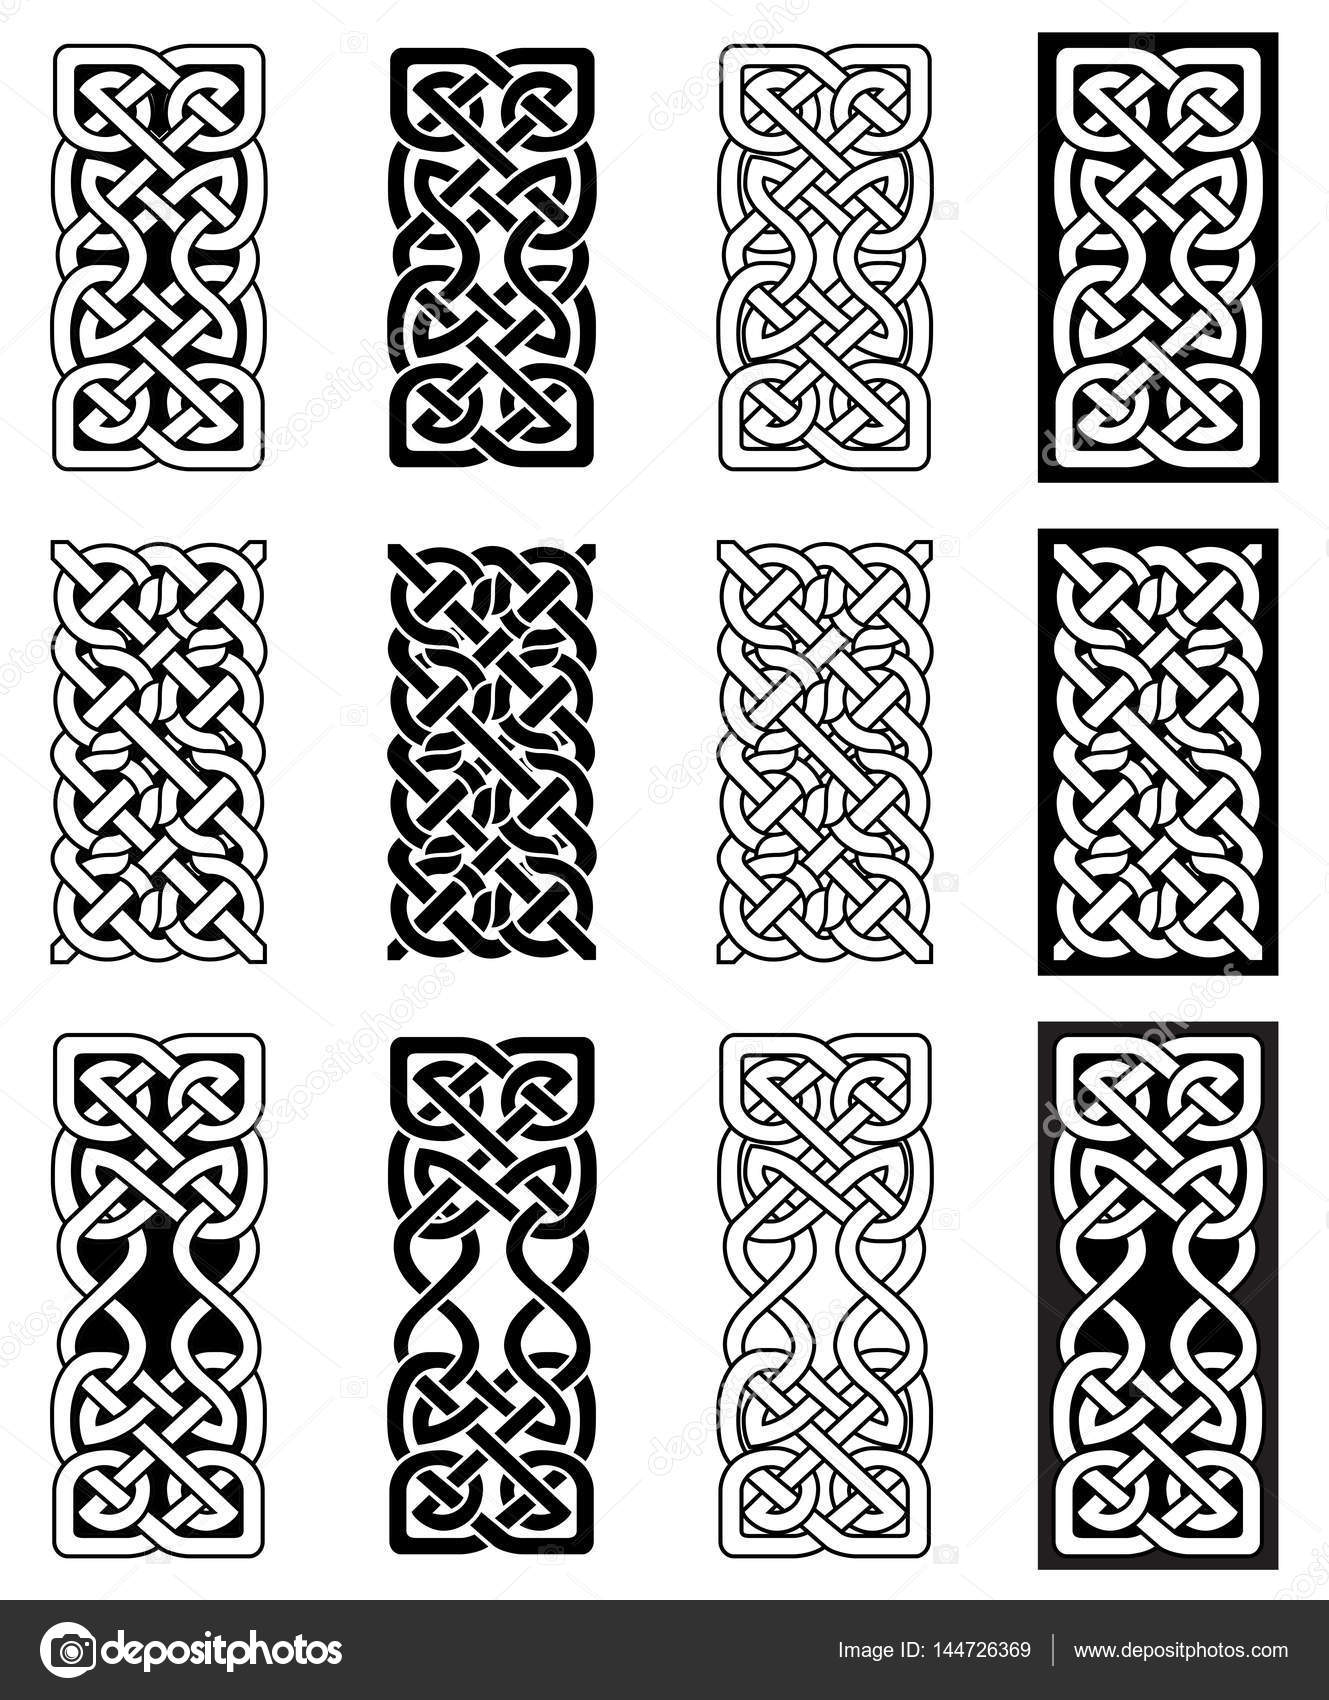 Celtic Style Endless Knot Rectangle Symbols In White And Black